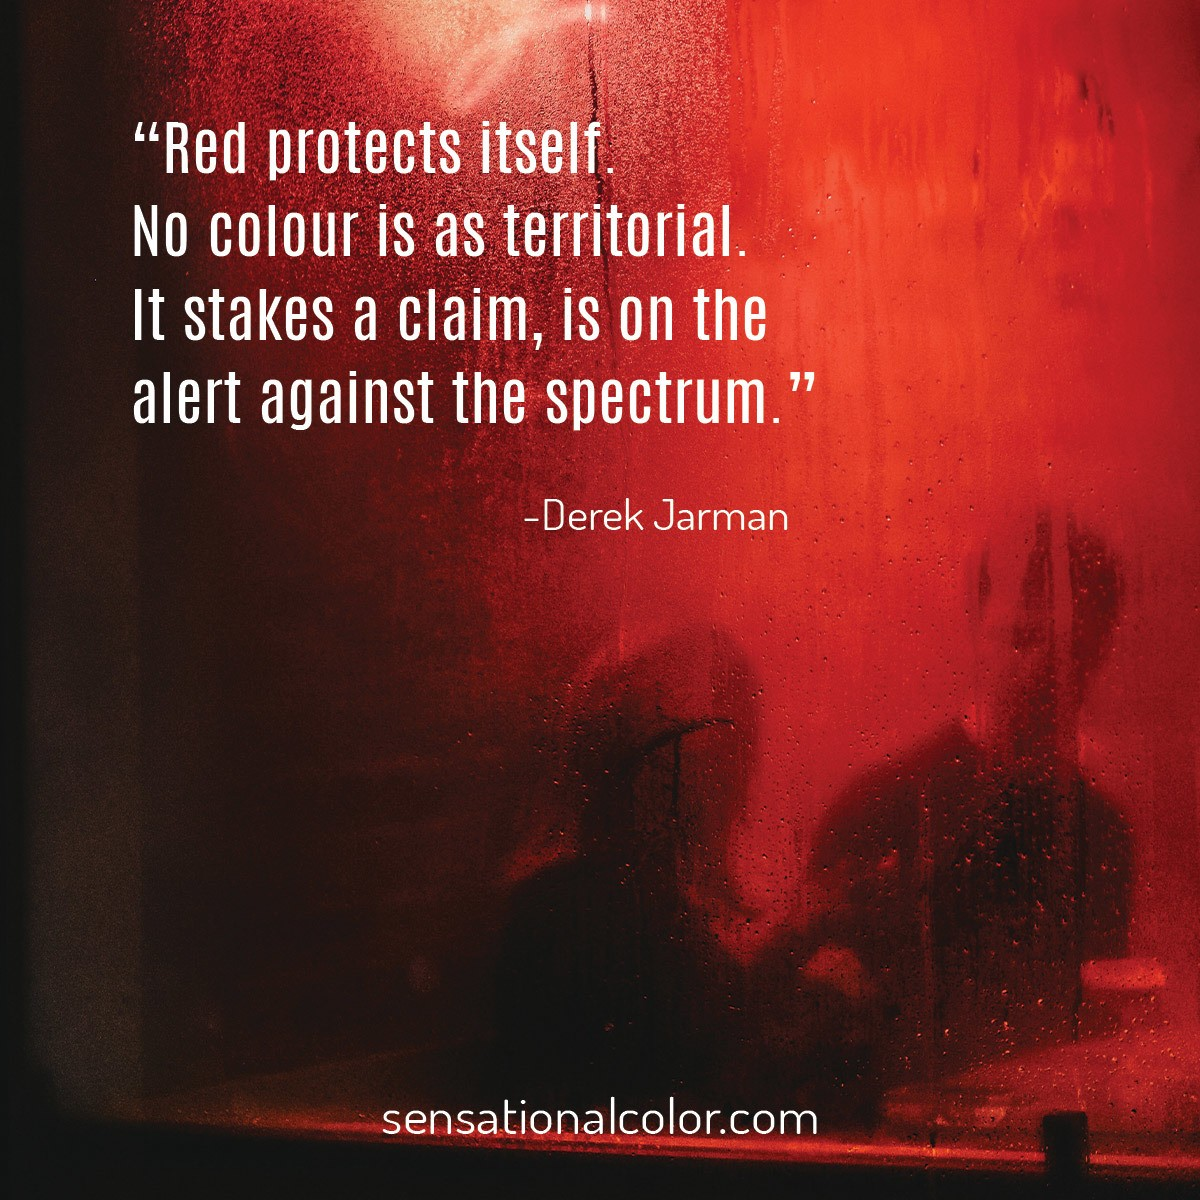 """Red protects itself. No colour is as territorial. It stakes a claim, is on the alert against the spectrum."" - Michael Derek Elworthy"